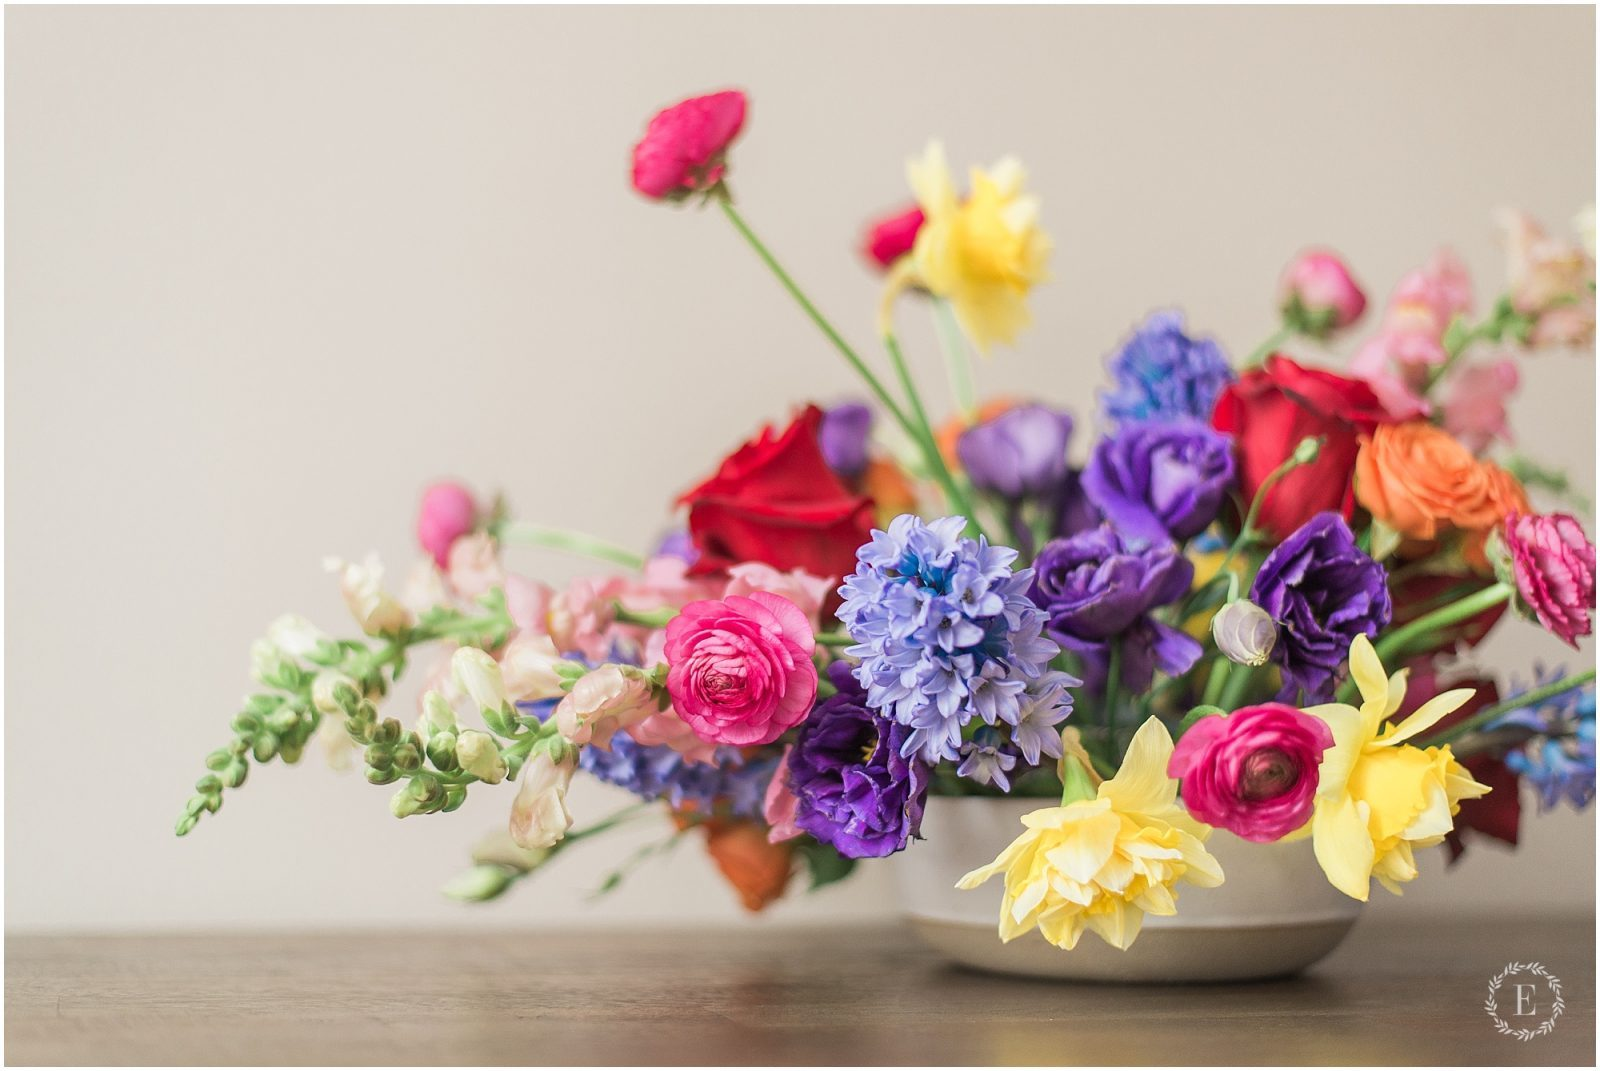 whimsical floral arrangement with bright and bold colors